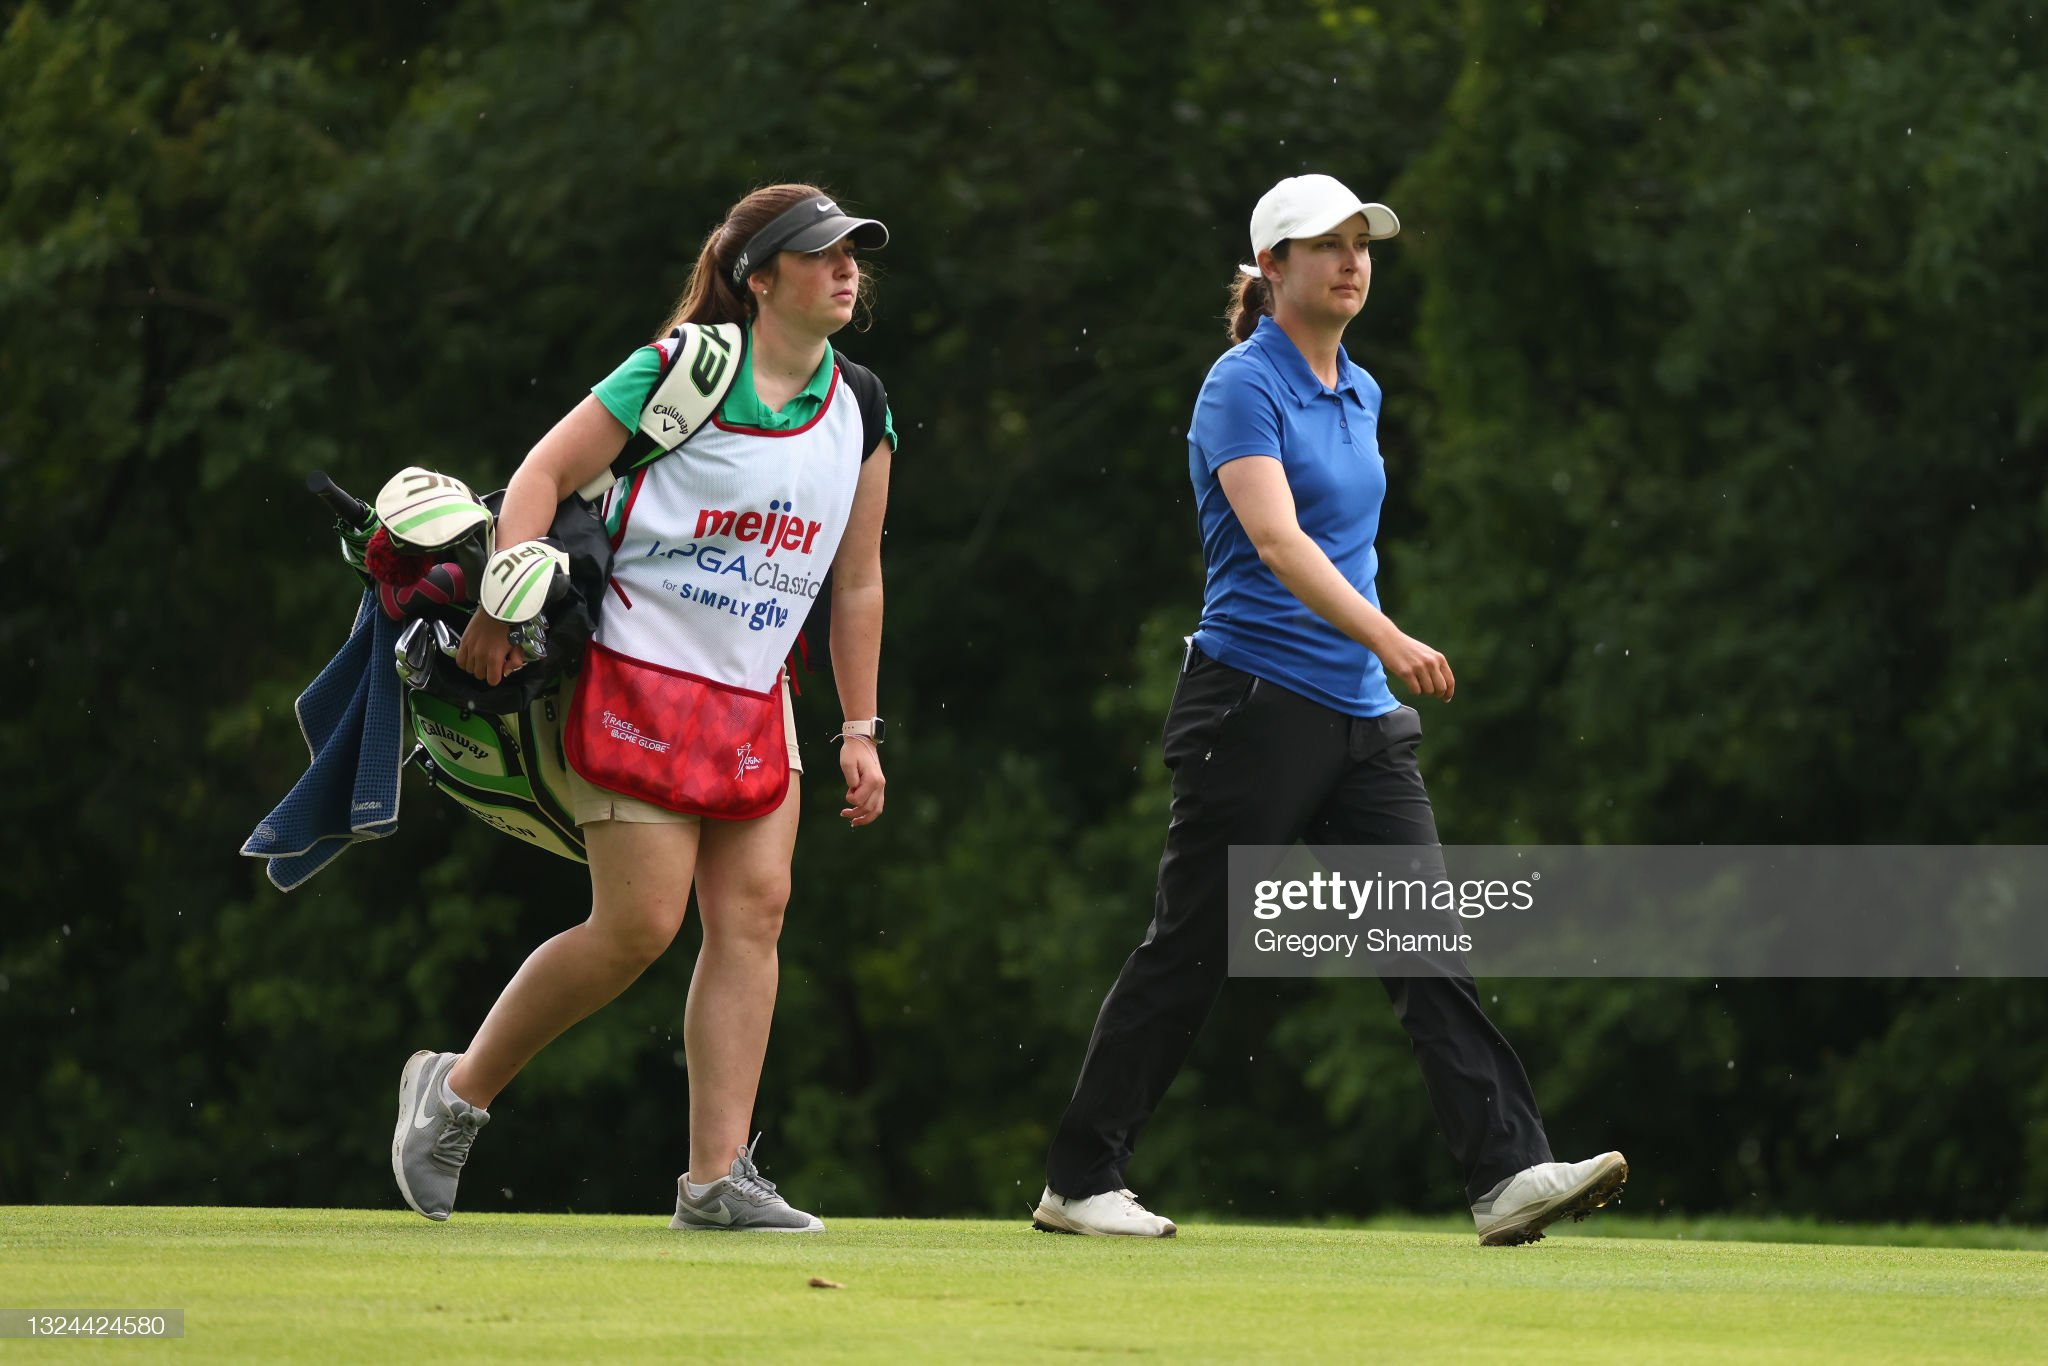 https://media.gettyimages.com/photos/lindy-duncan-walks-with-her-caddie-on-the-10th-hole-during-round-of-picture-id1324424580?s=2048x2048